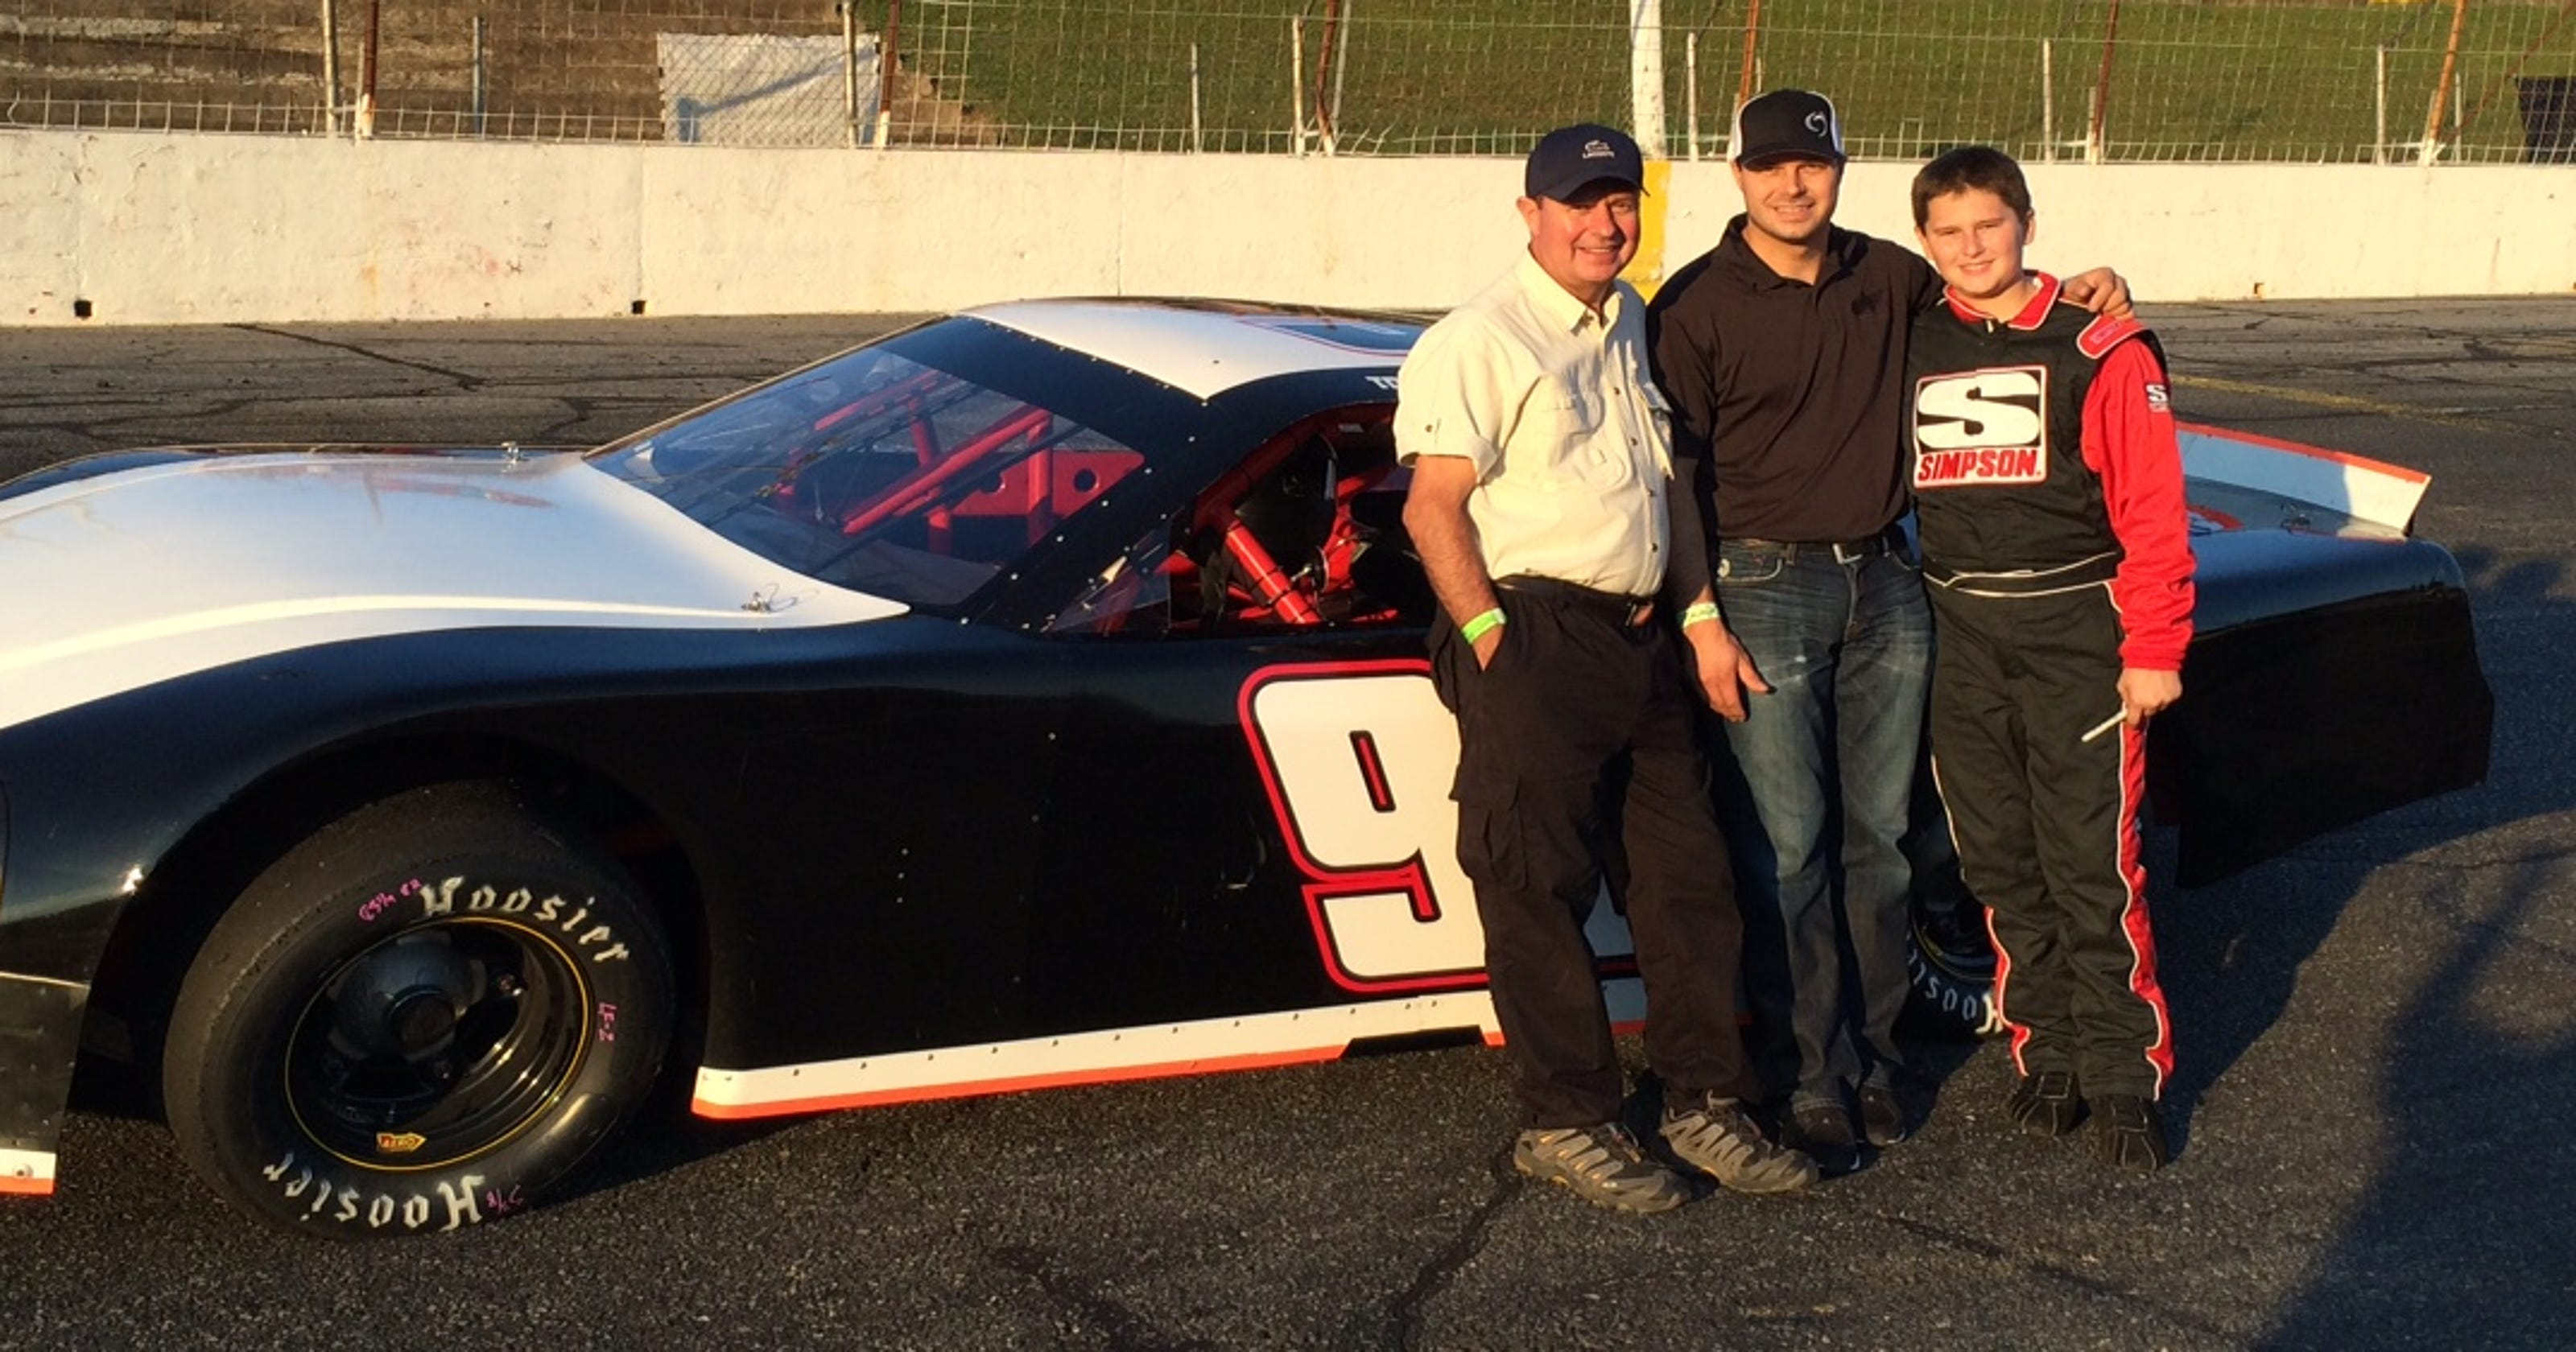 Gillilands will race each other in Late Model event